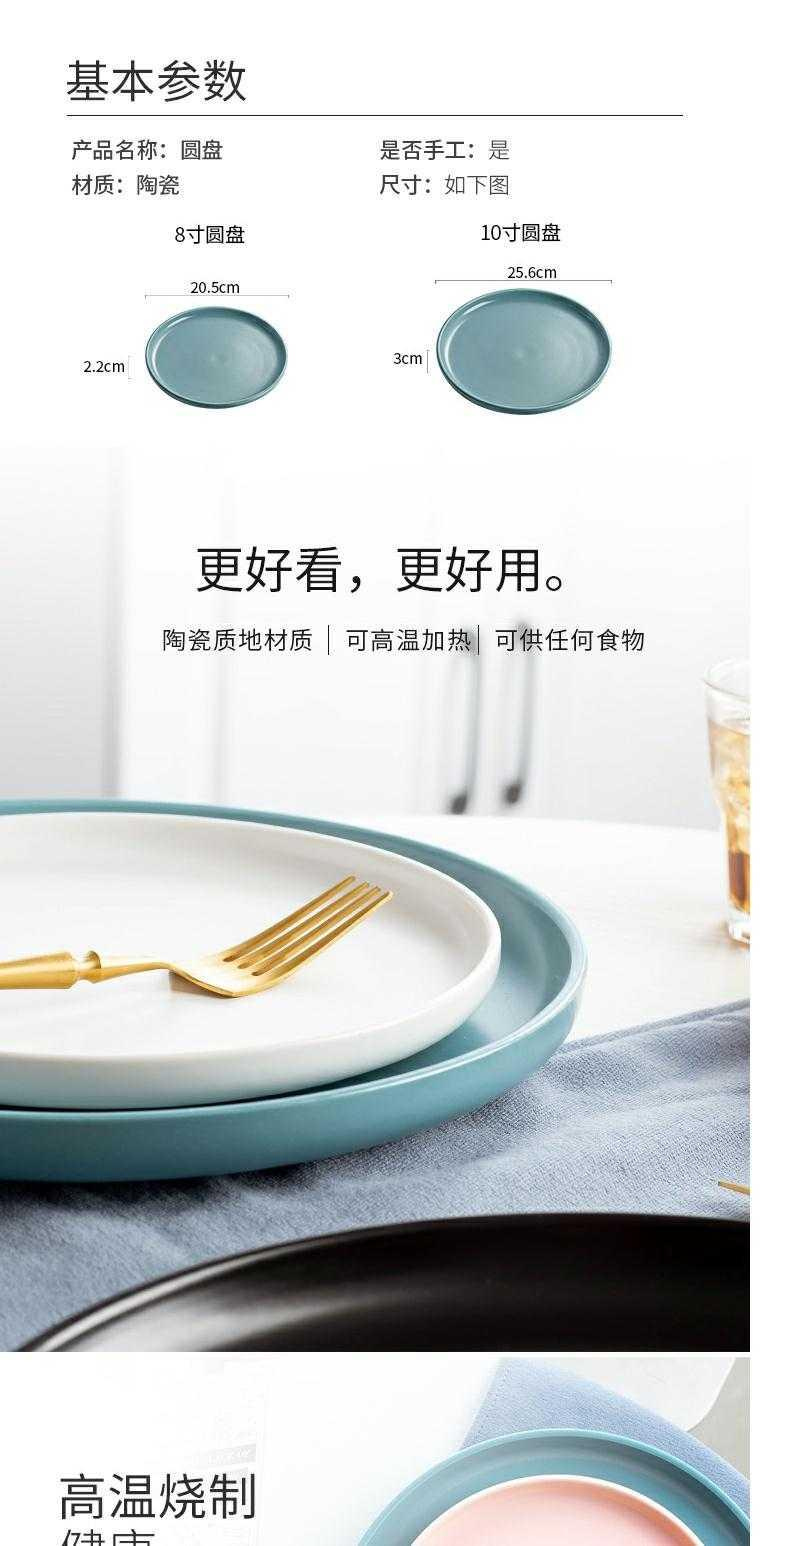 Breakfast dishes color during the quotation candy circular creative Nordic net household ins serving dish wind plate ceramic plates